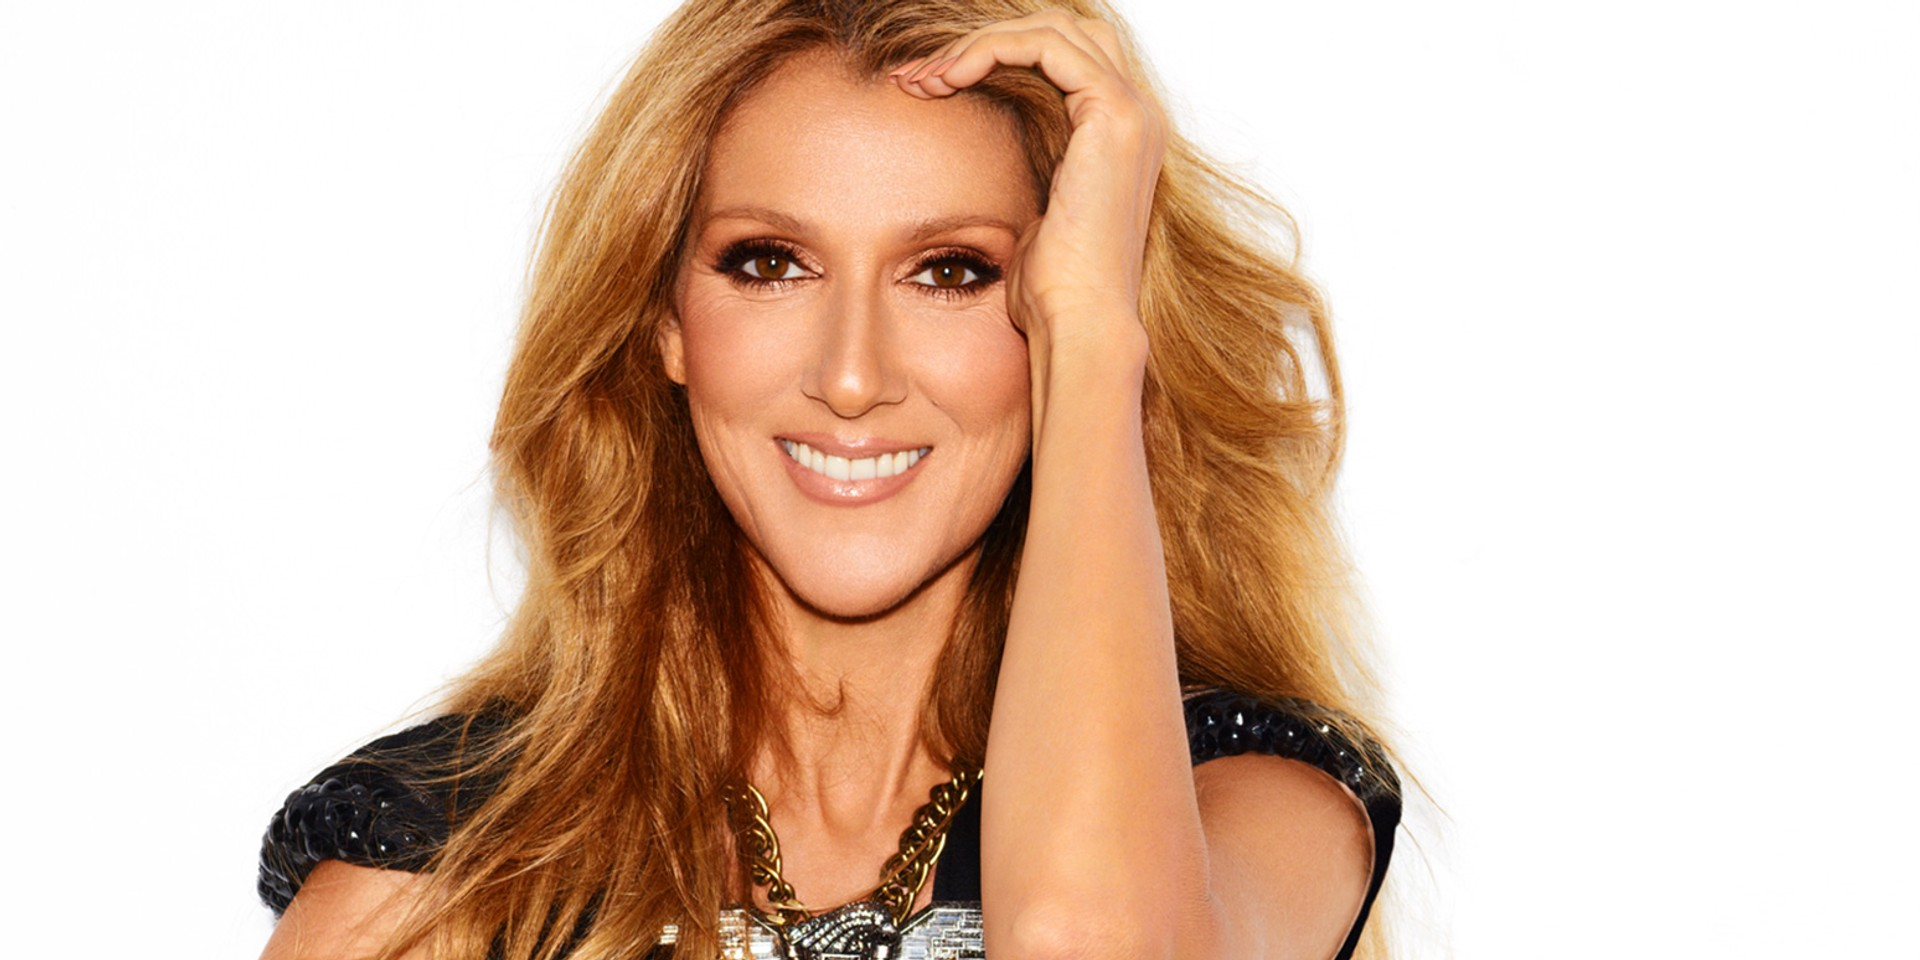 Celine Dion to tour Asia for the first time – Singapore, Manila, Jakarta & more